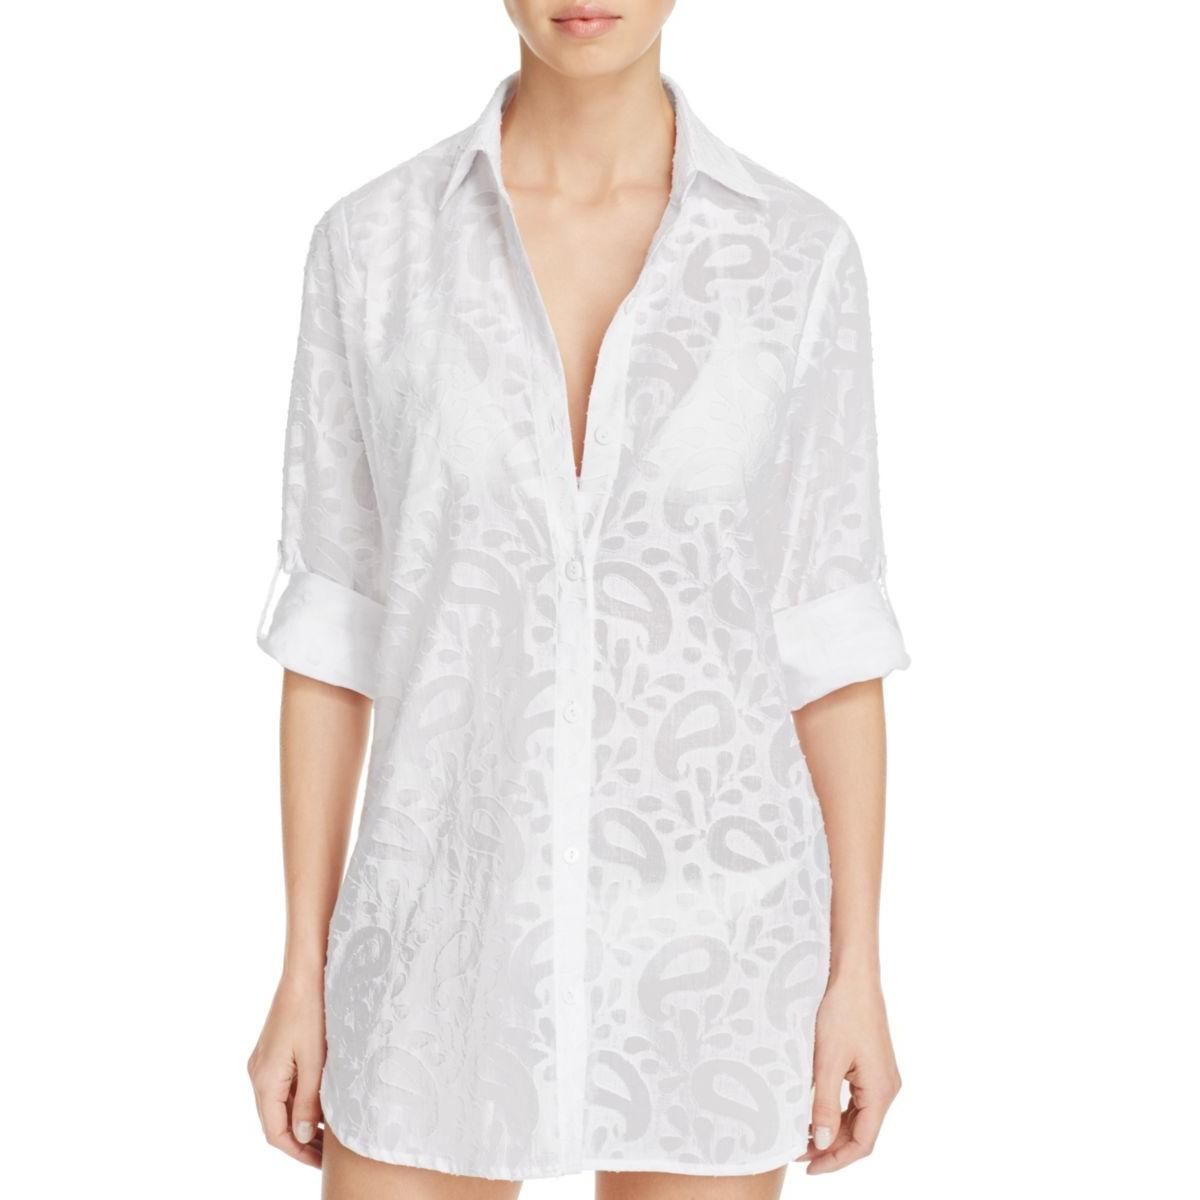 Tommy Bahama Womens Textured Swim Cover-up Button-Down Top